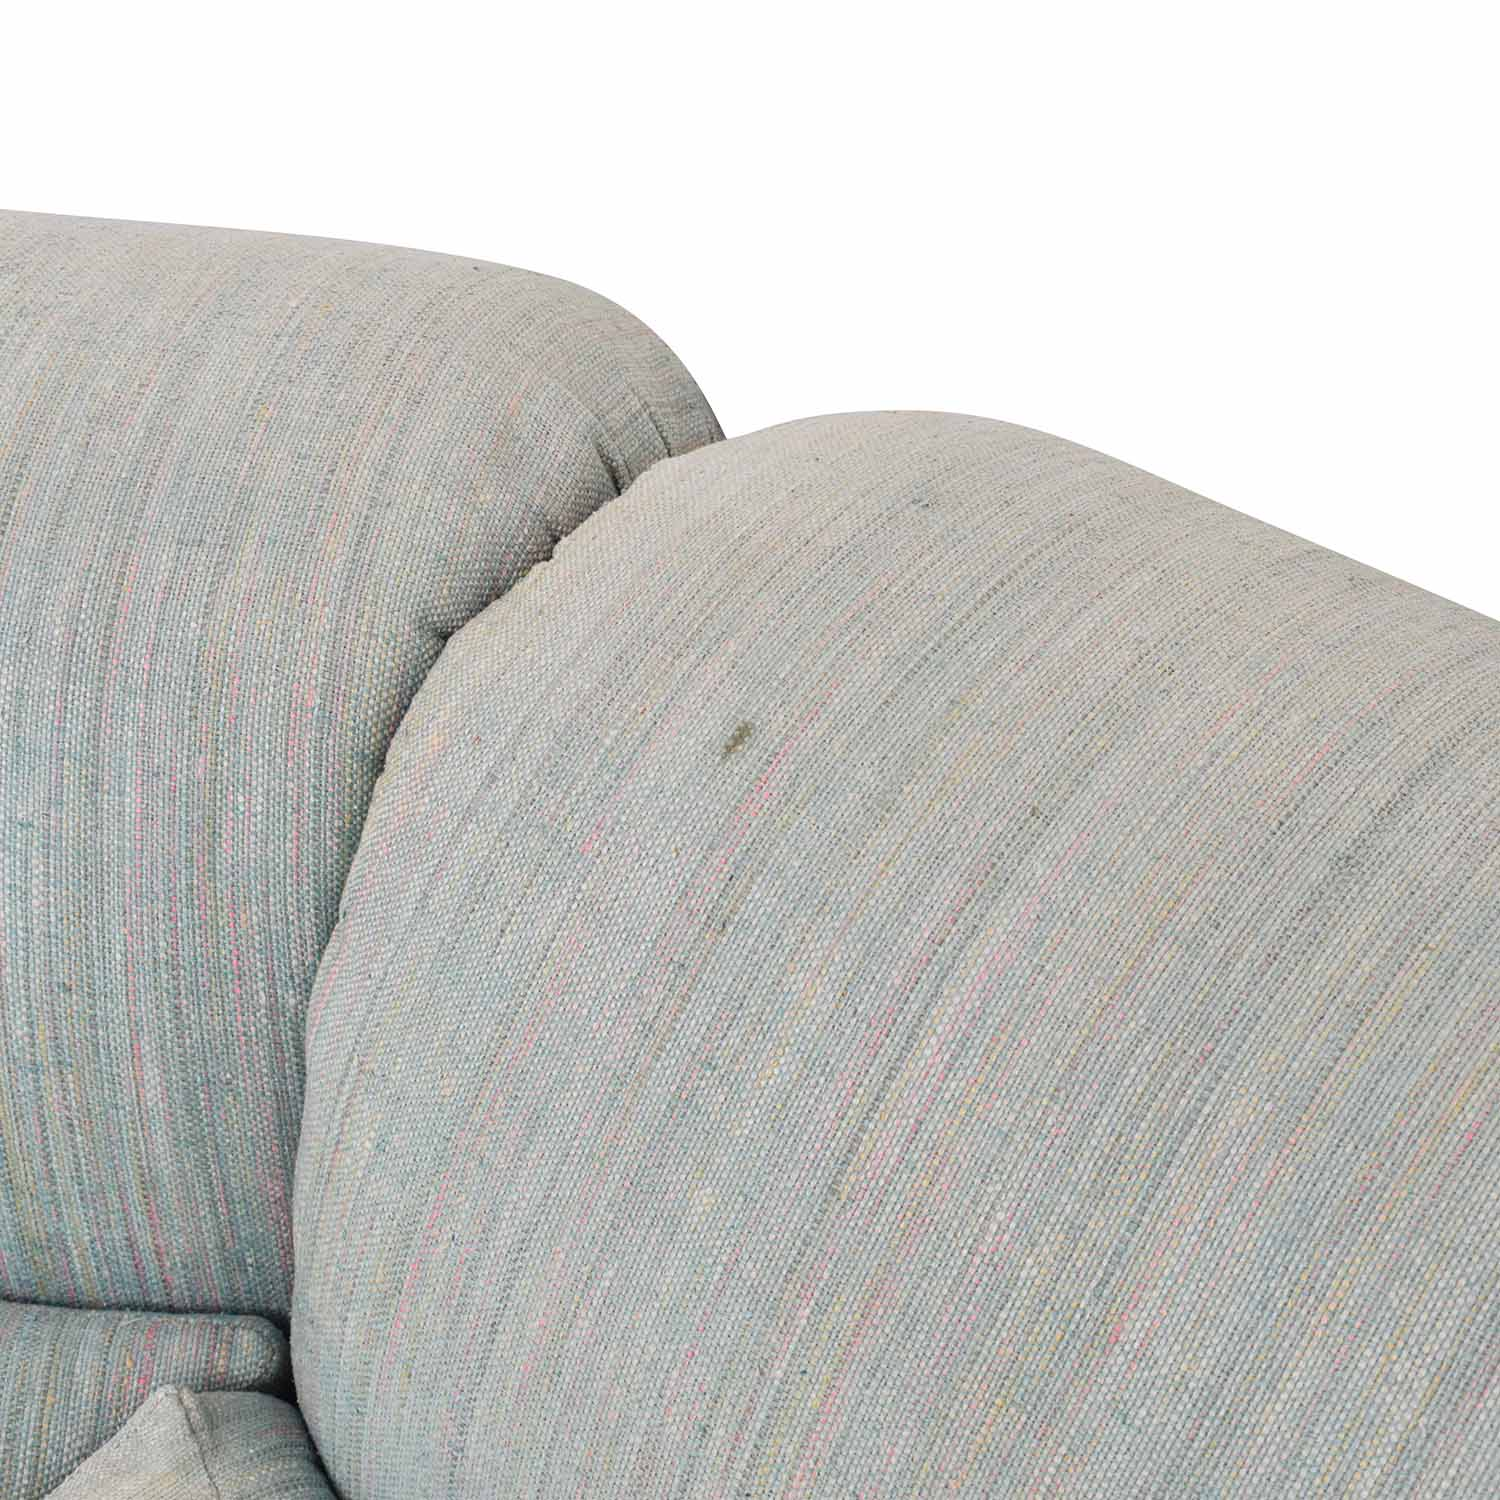 Preview Furniture Preview Furniture David L. James Curved Corner Sectional Sofa for sale